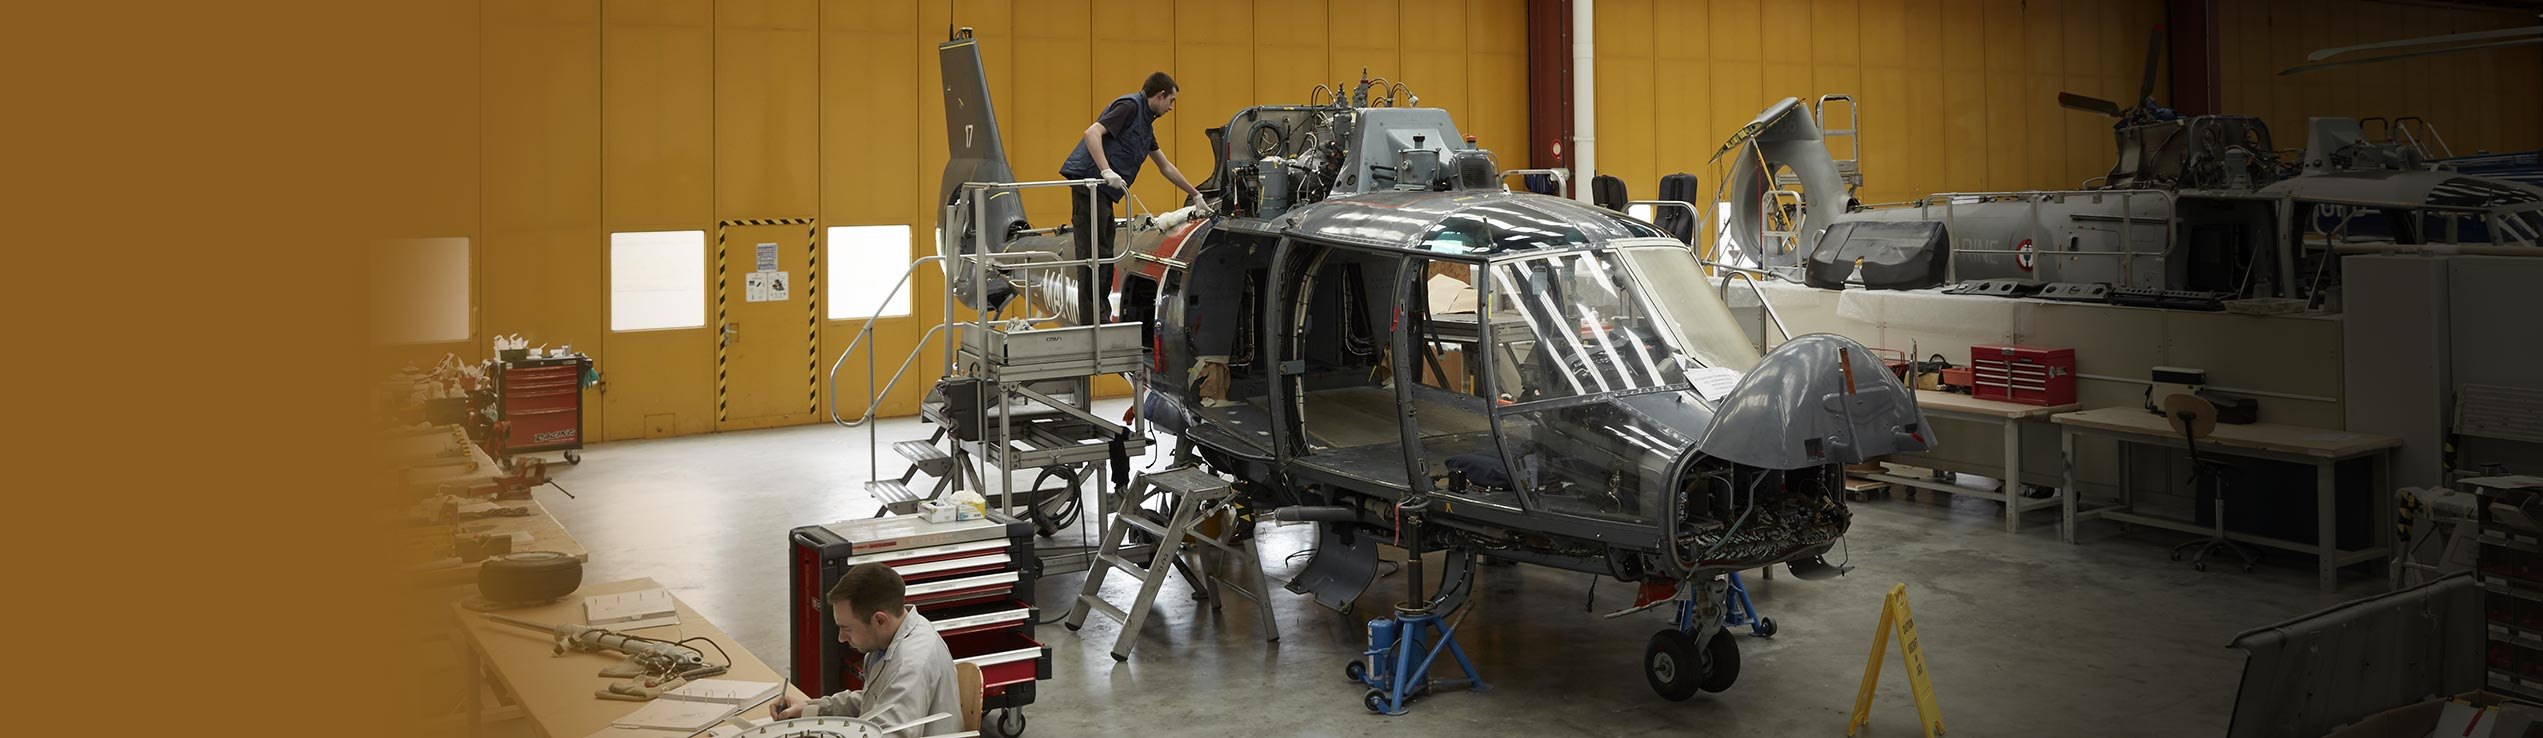 helicopter modification